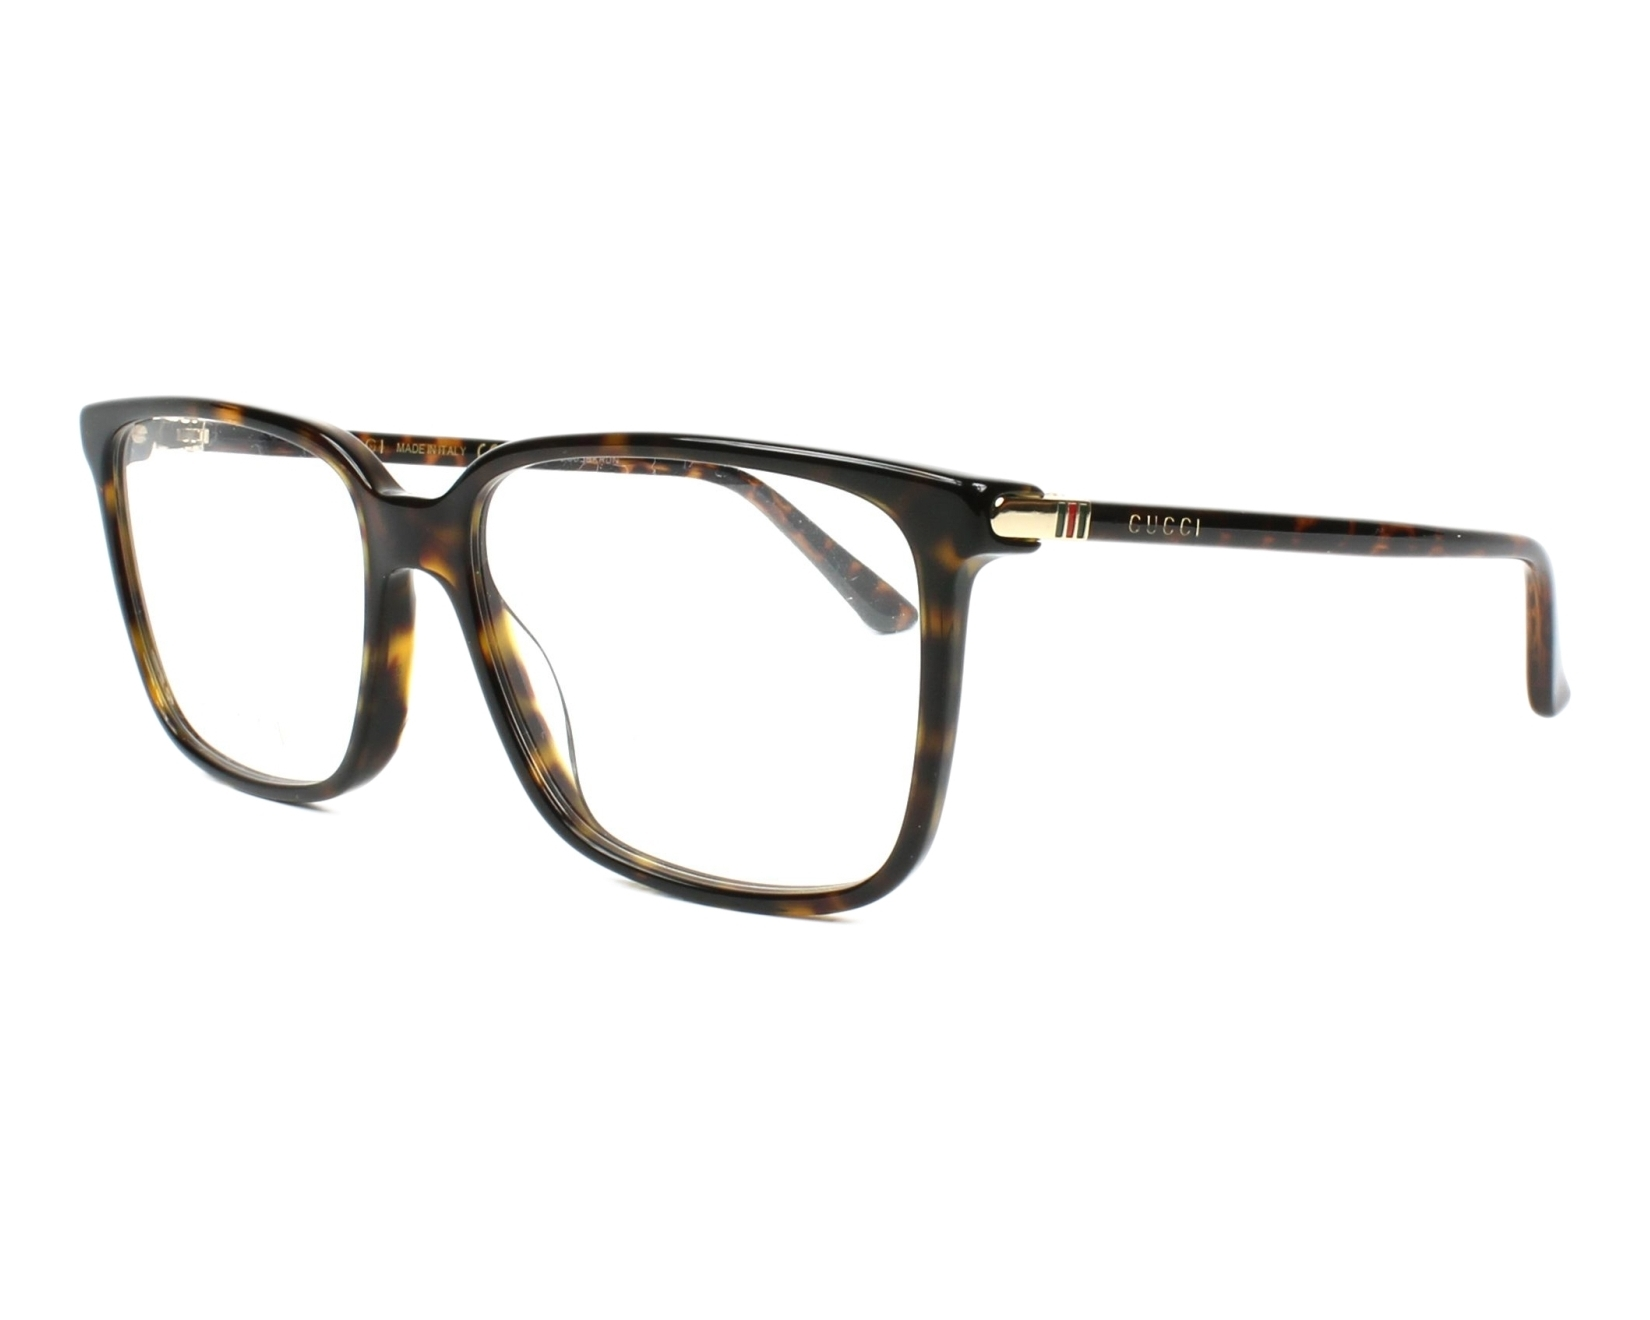 795bac54456e Gucci Glasses - low prices all year long (326 models)